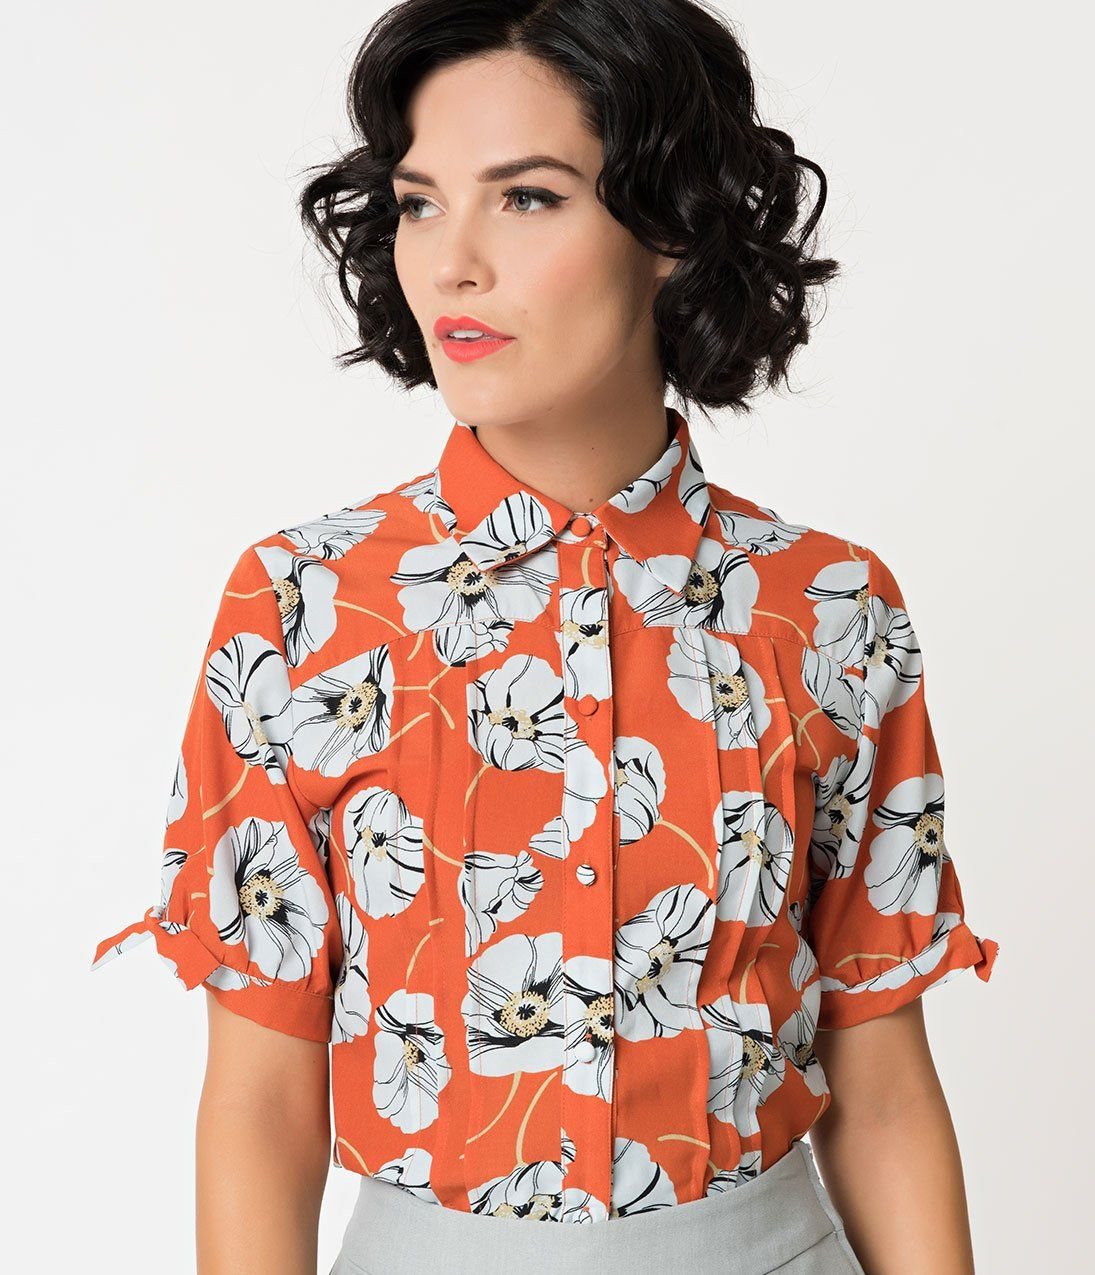 f6ed69c4ccfdb Orange   White Floral Button Up Short Sleeve Colvin Blouse in 2019 ...